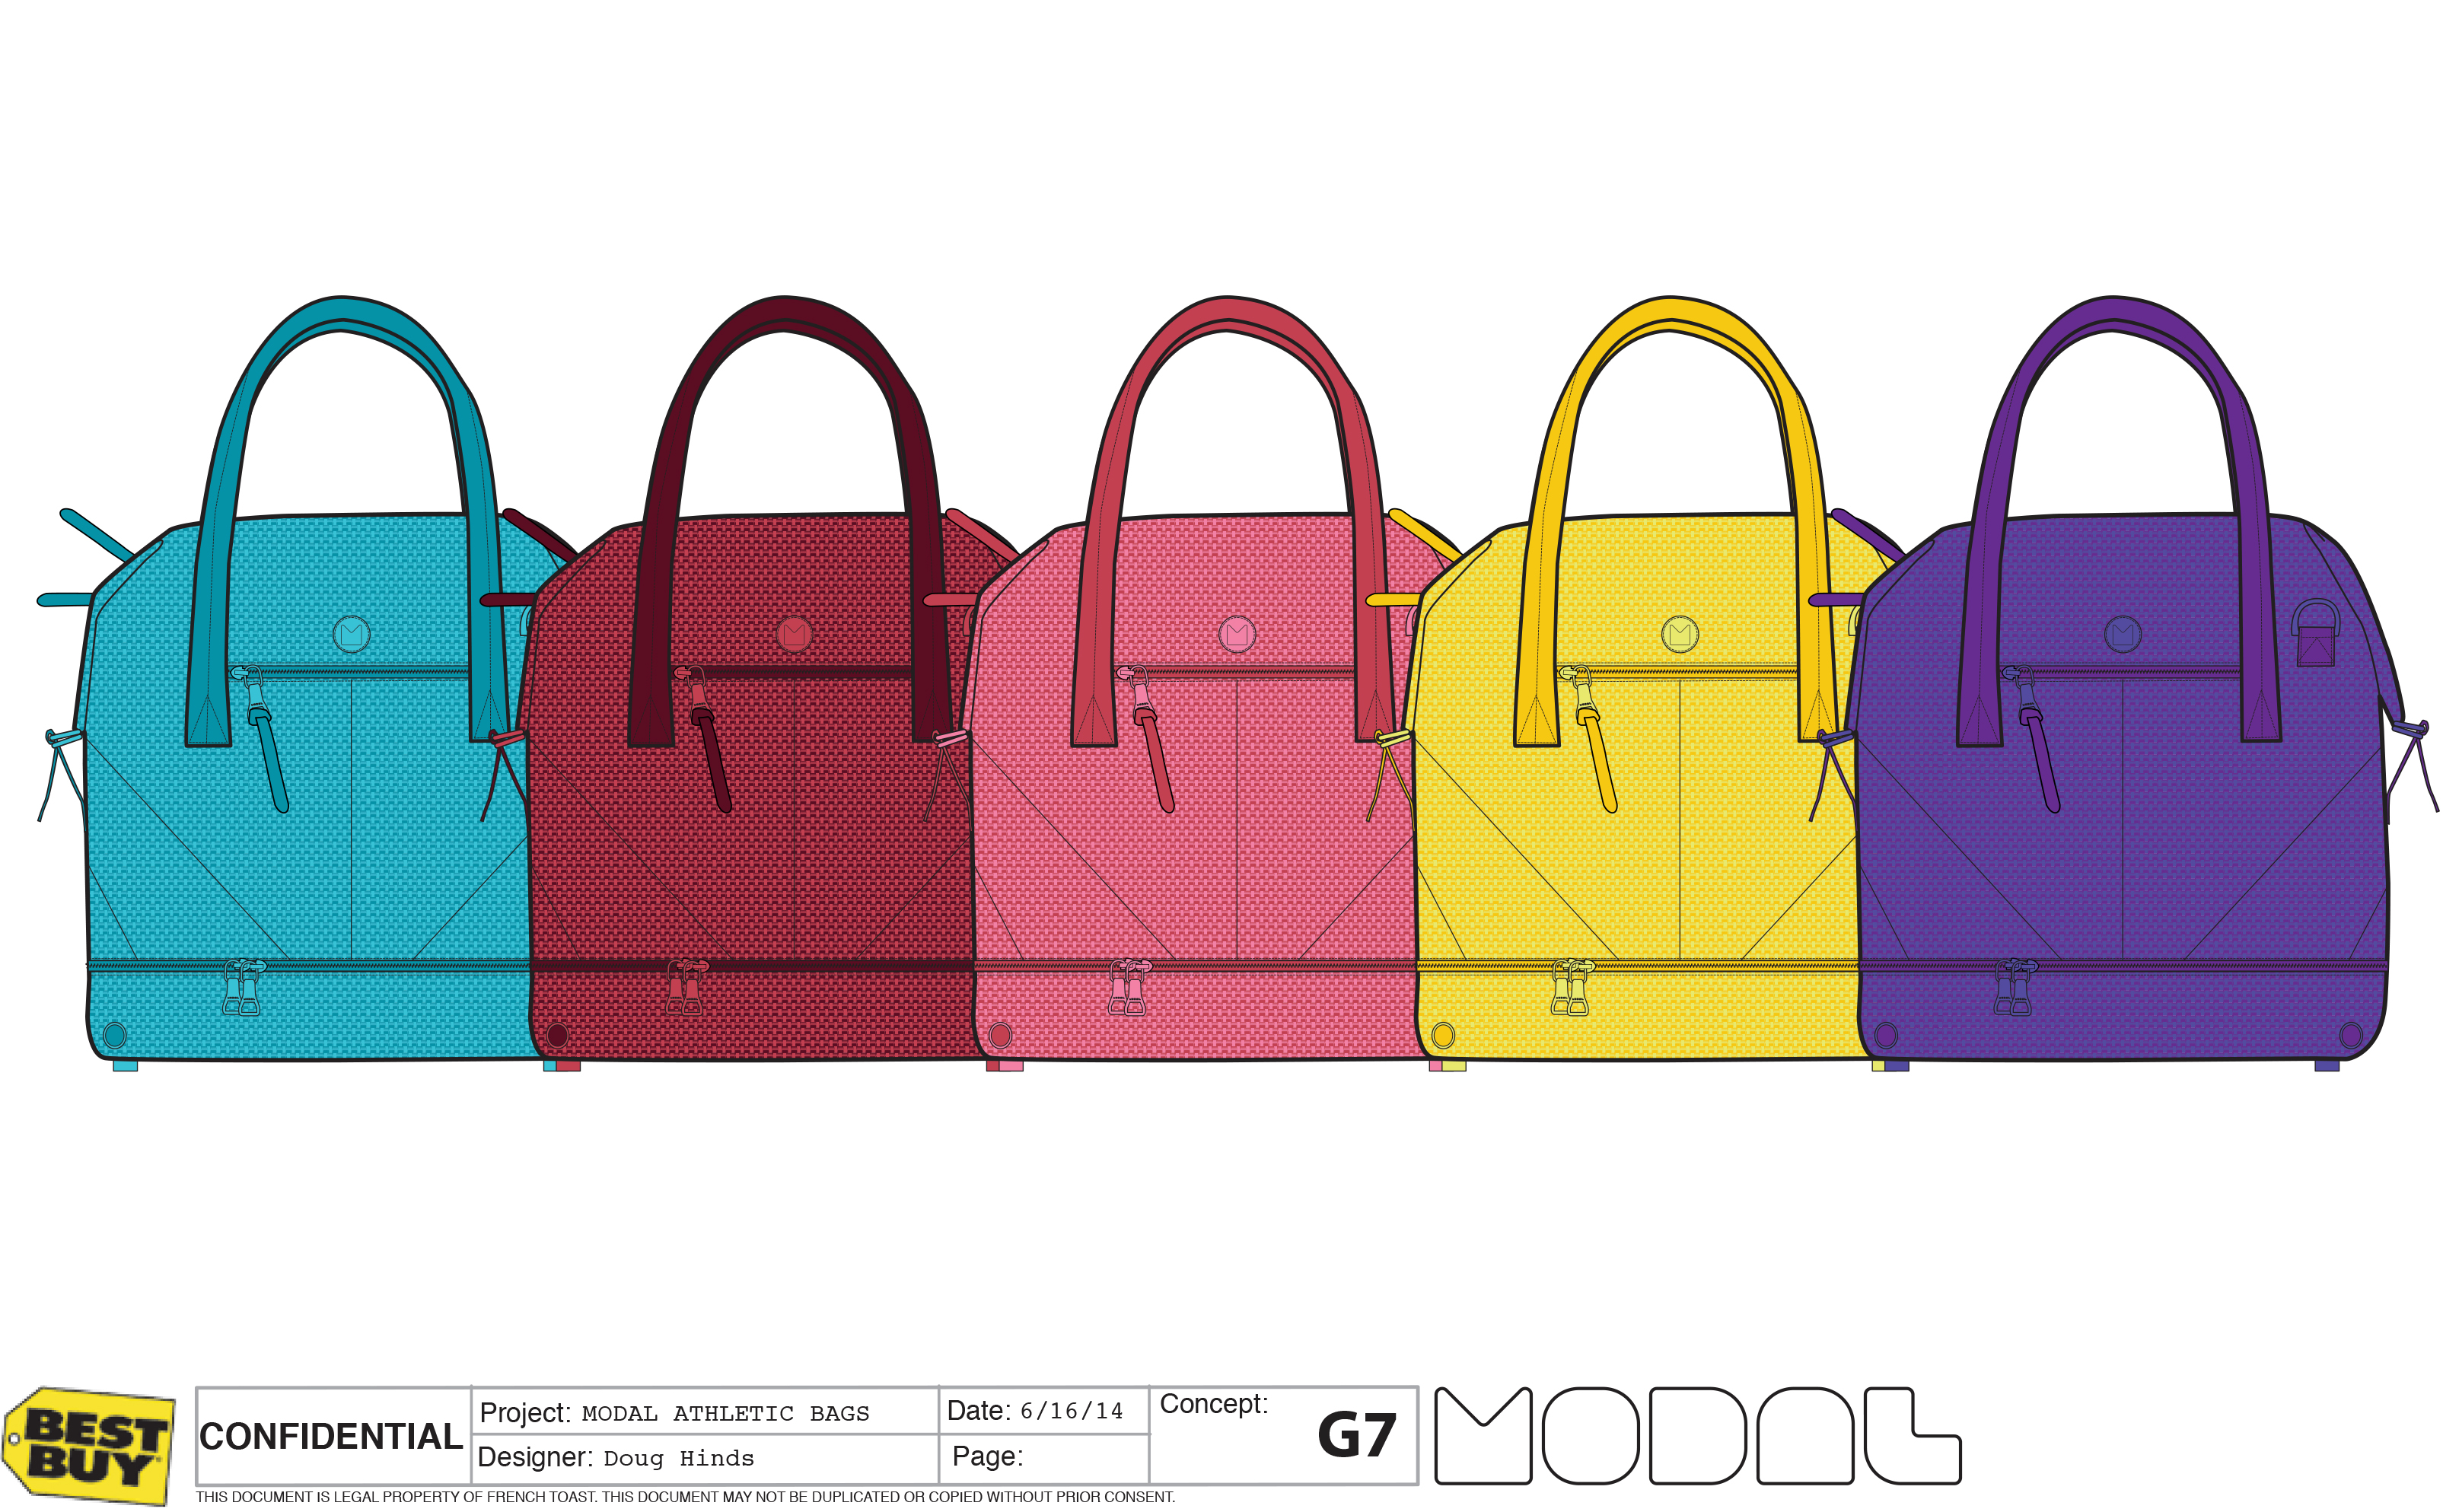 MODAL ATHLETIC TOTE BAGS